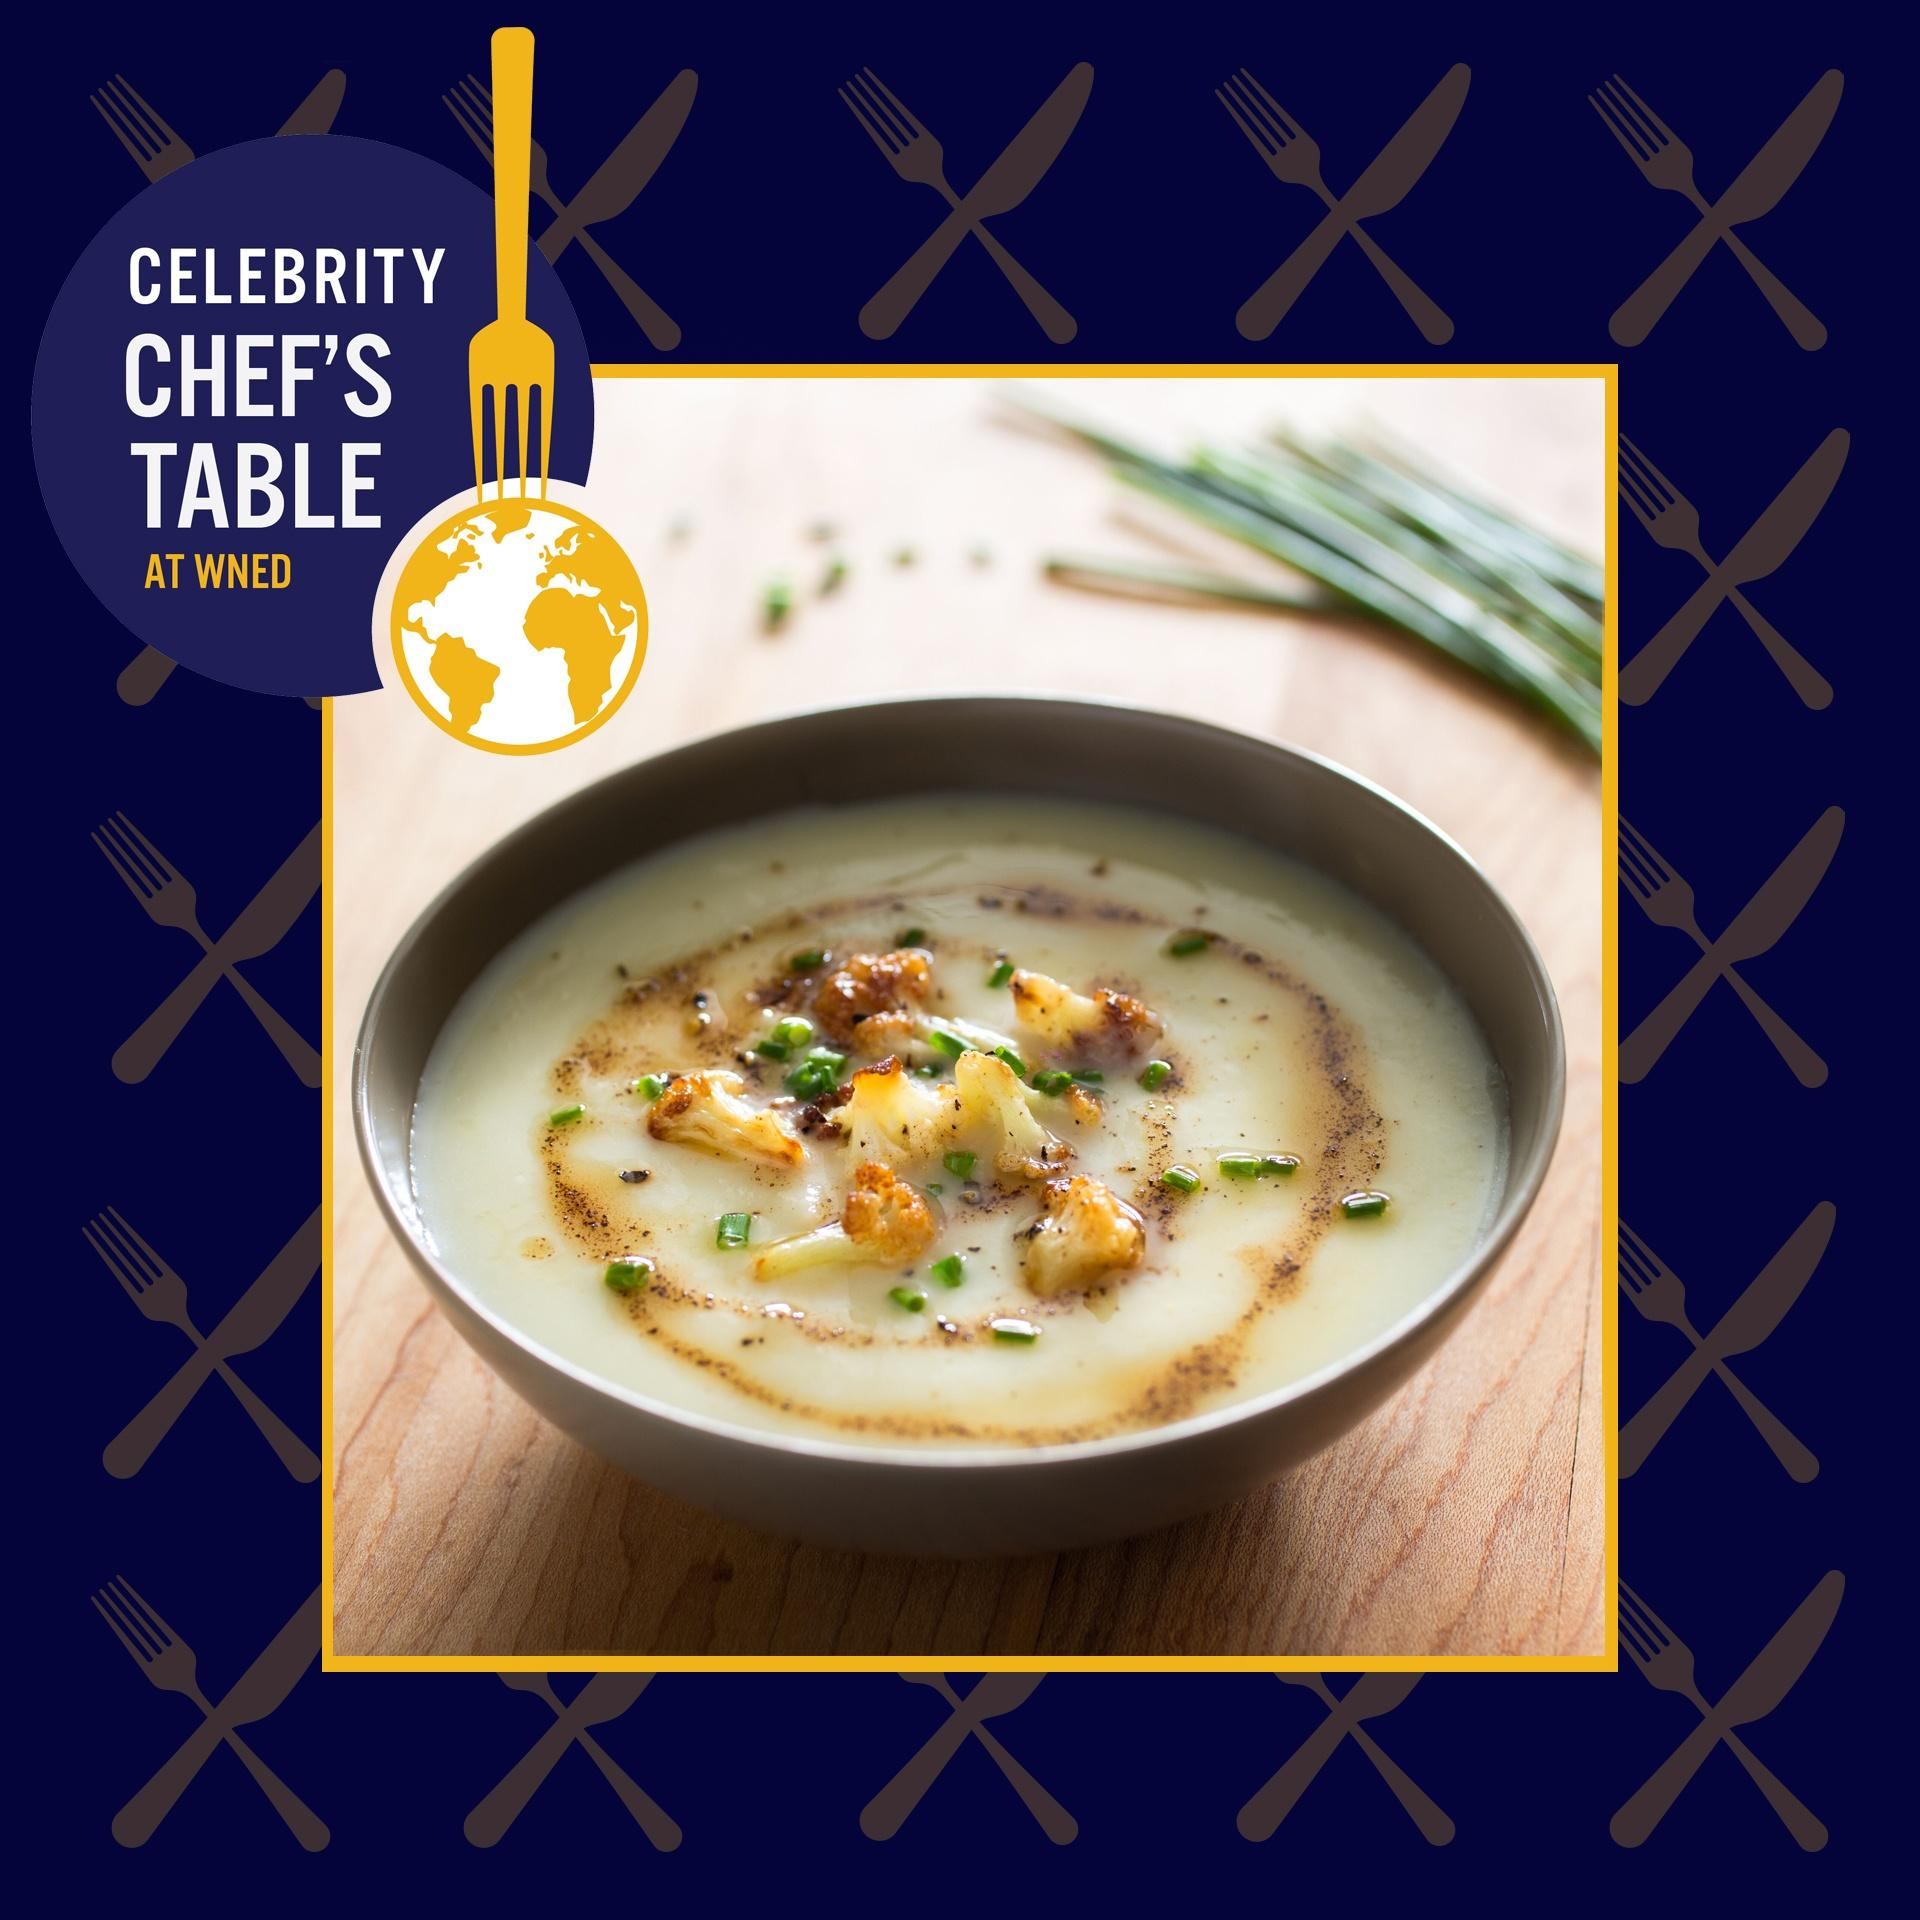 Celebrity Chef's Table Soup Course: Cream of Cauliflower Soup